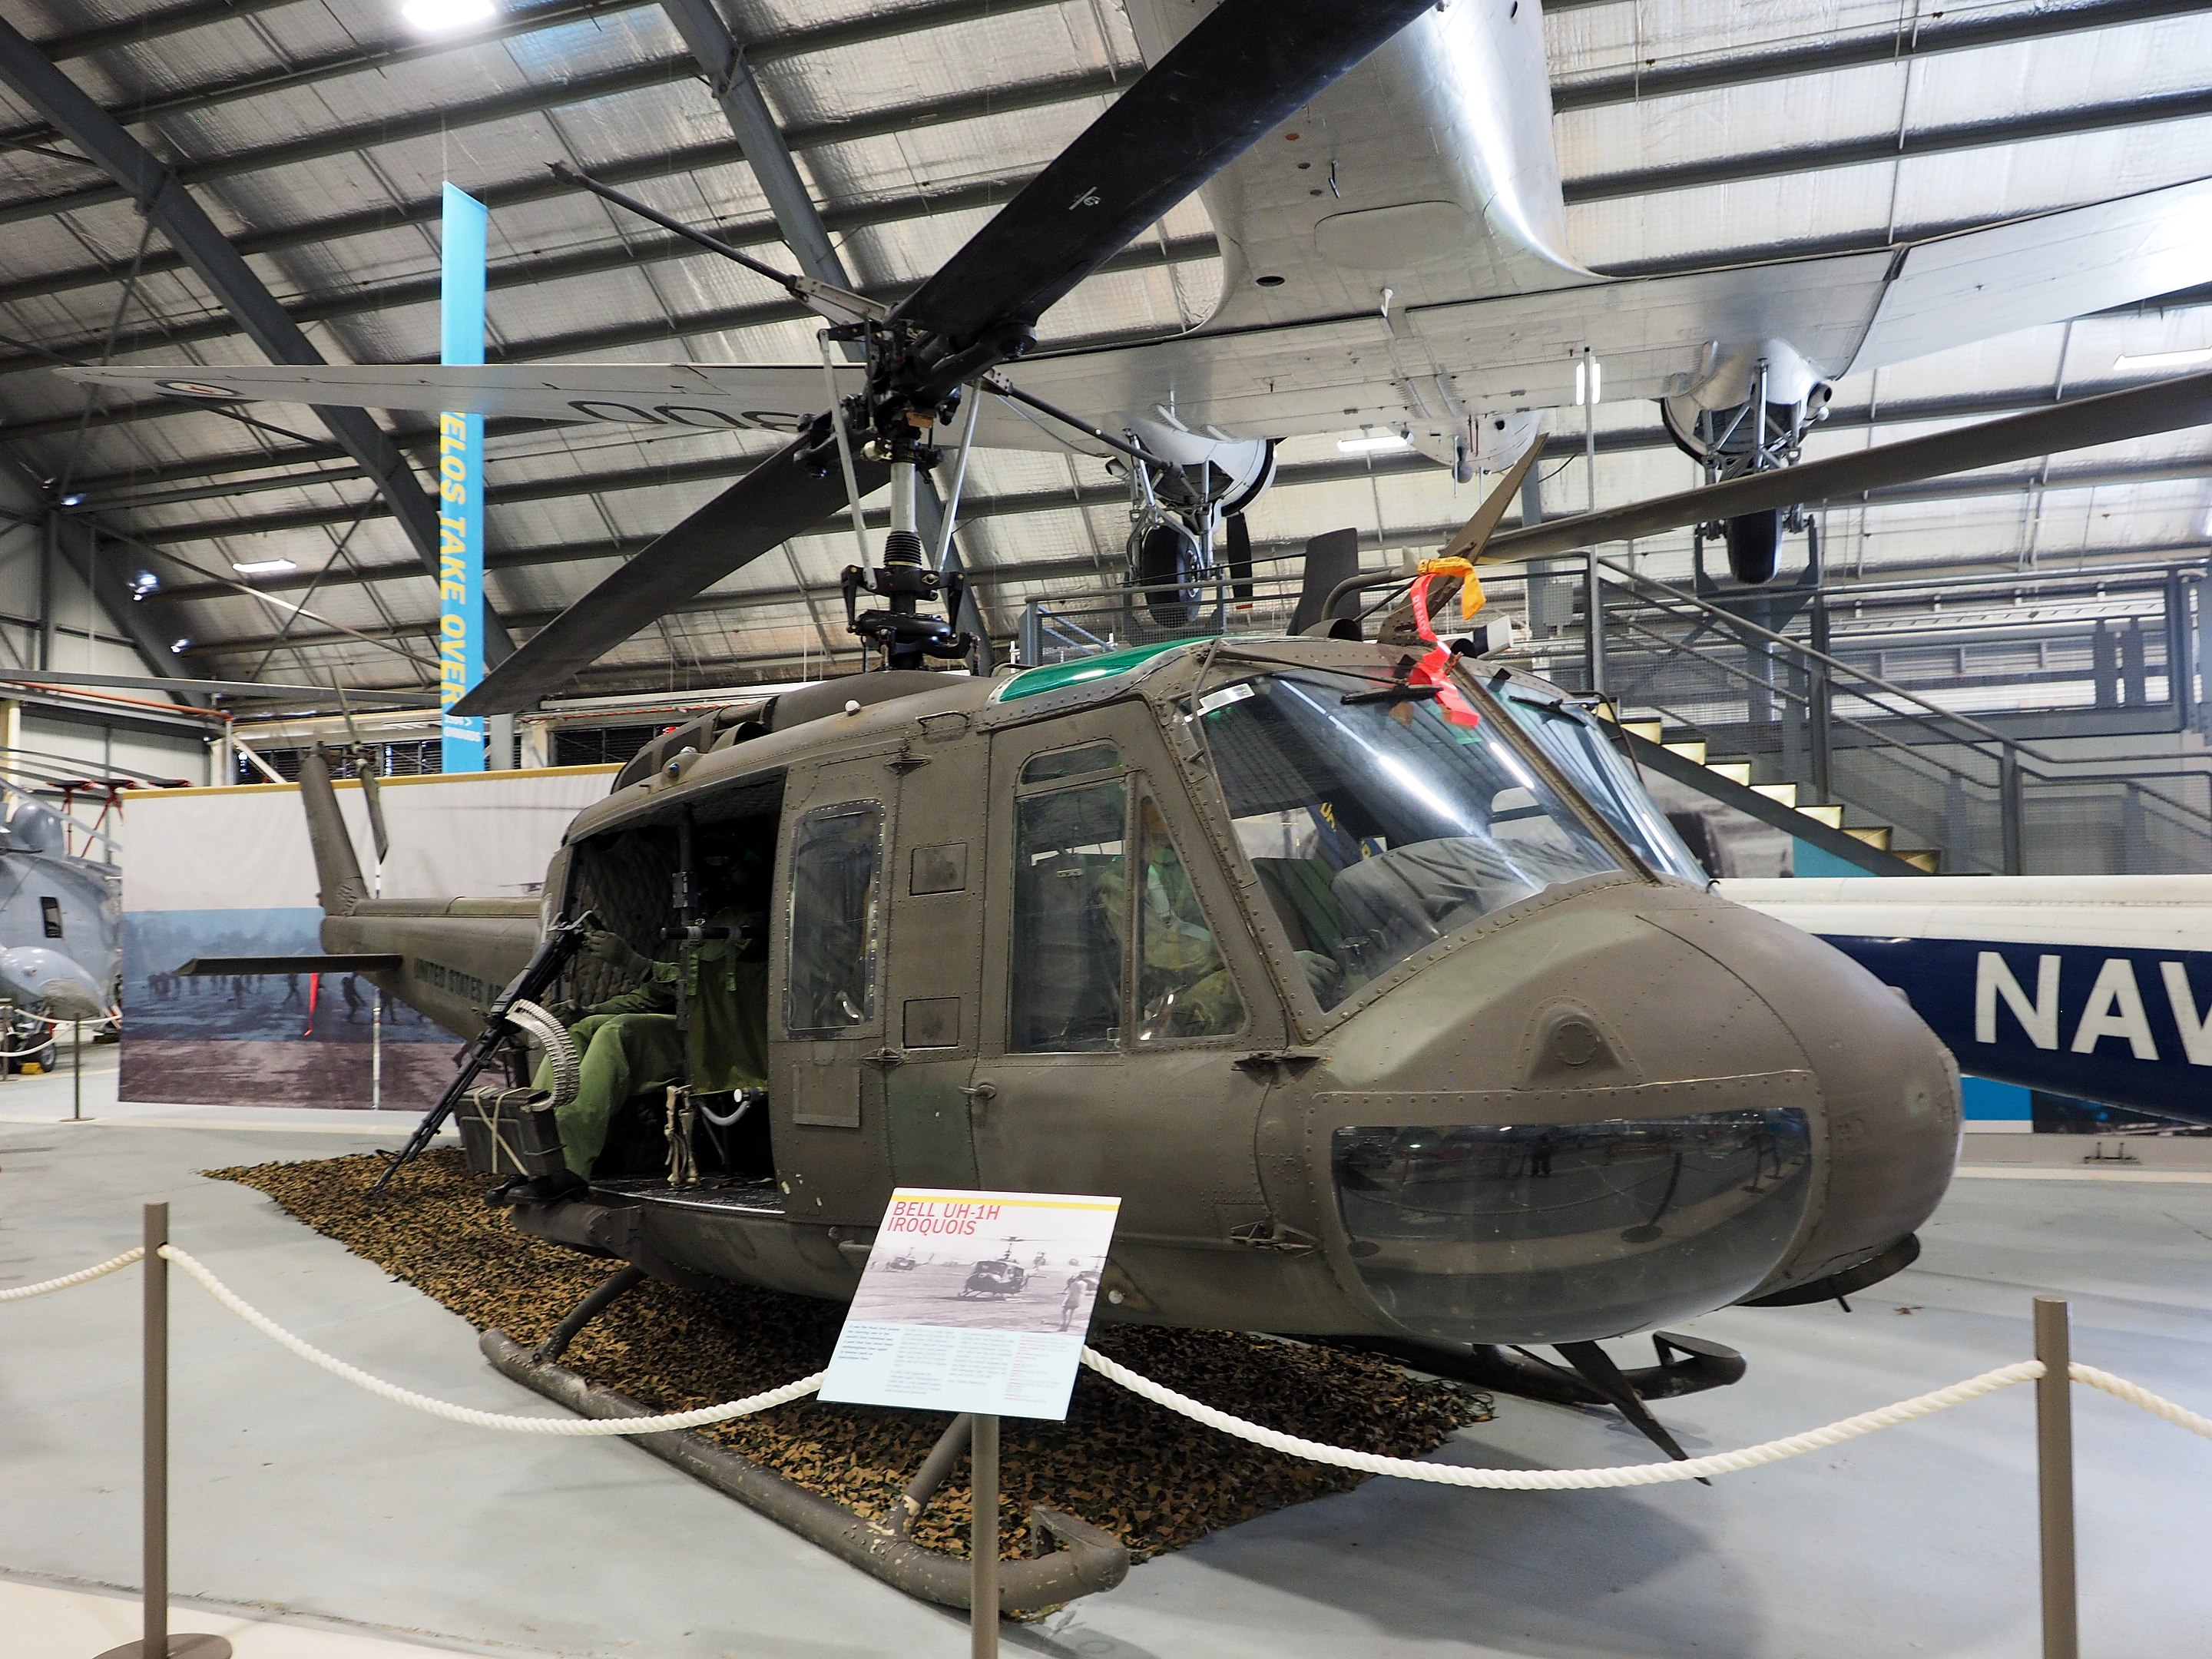 Bell_UH-1H_Iroquois_at_the_Fleet_Air_Arm_Museum_February_2015-2.jpg